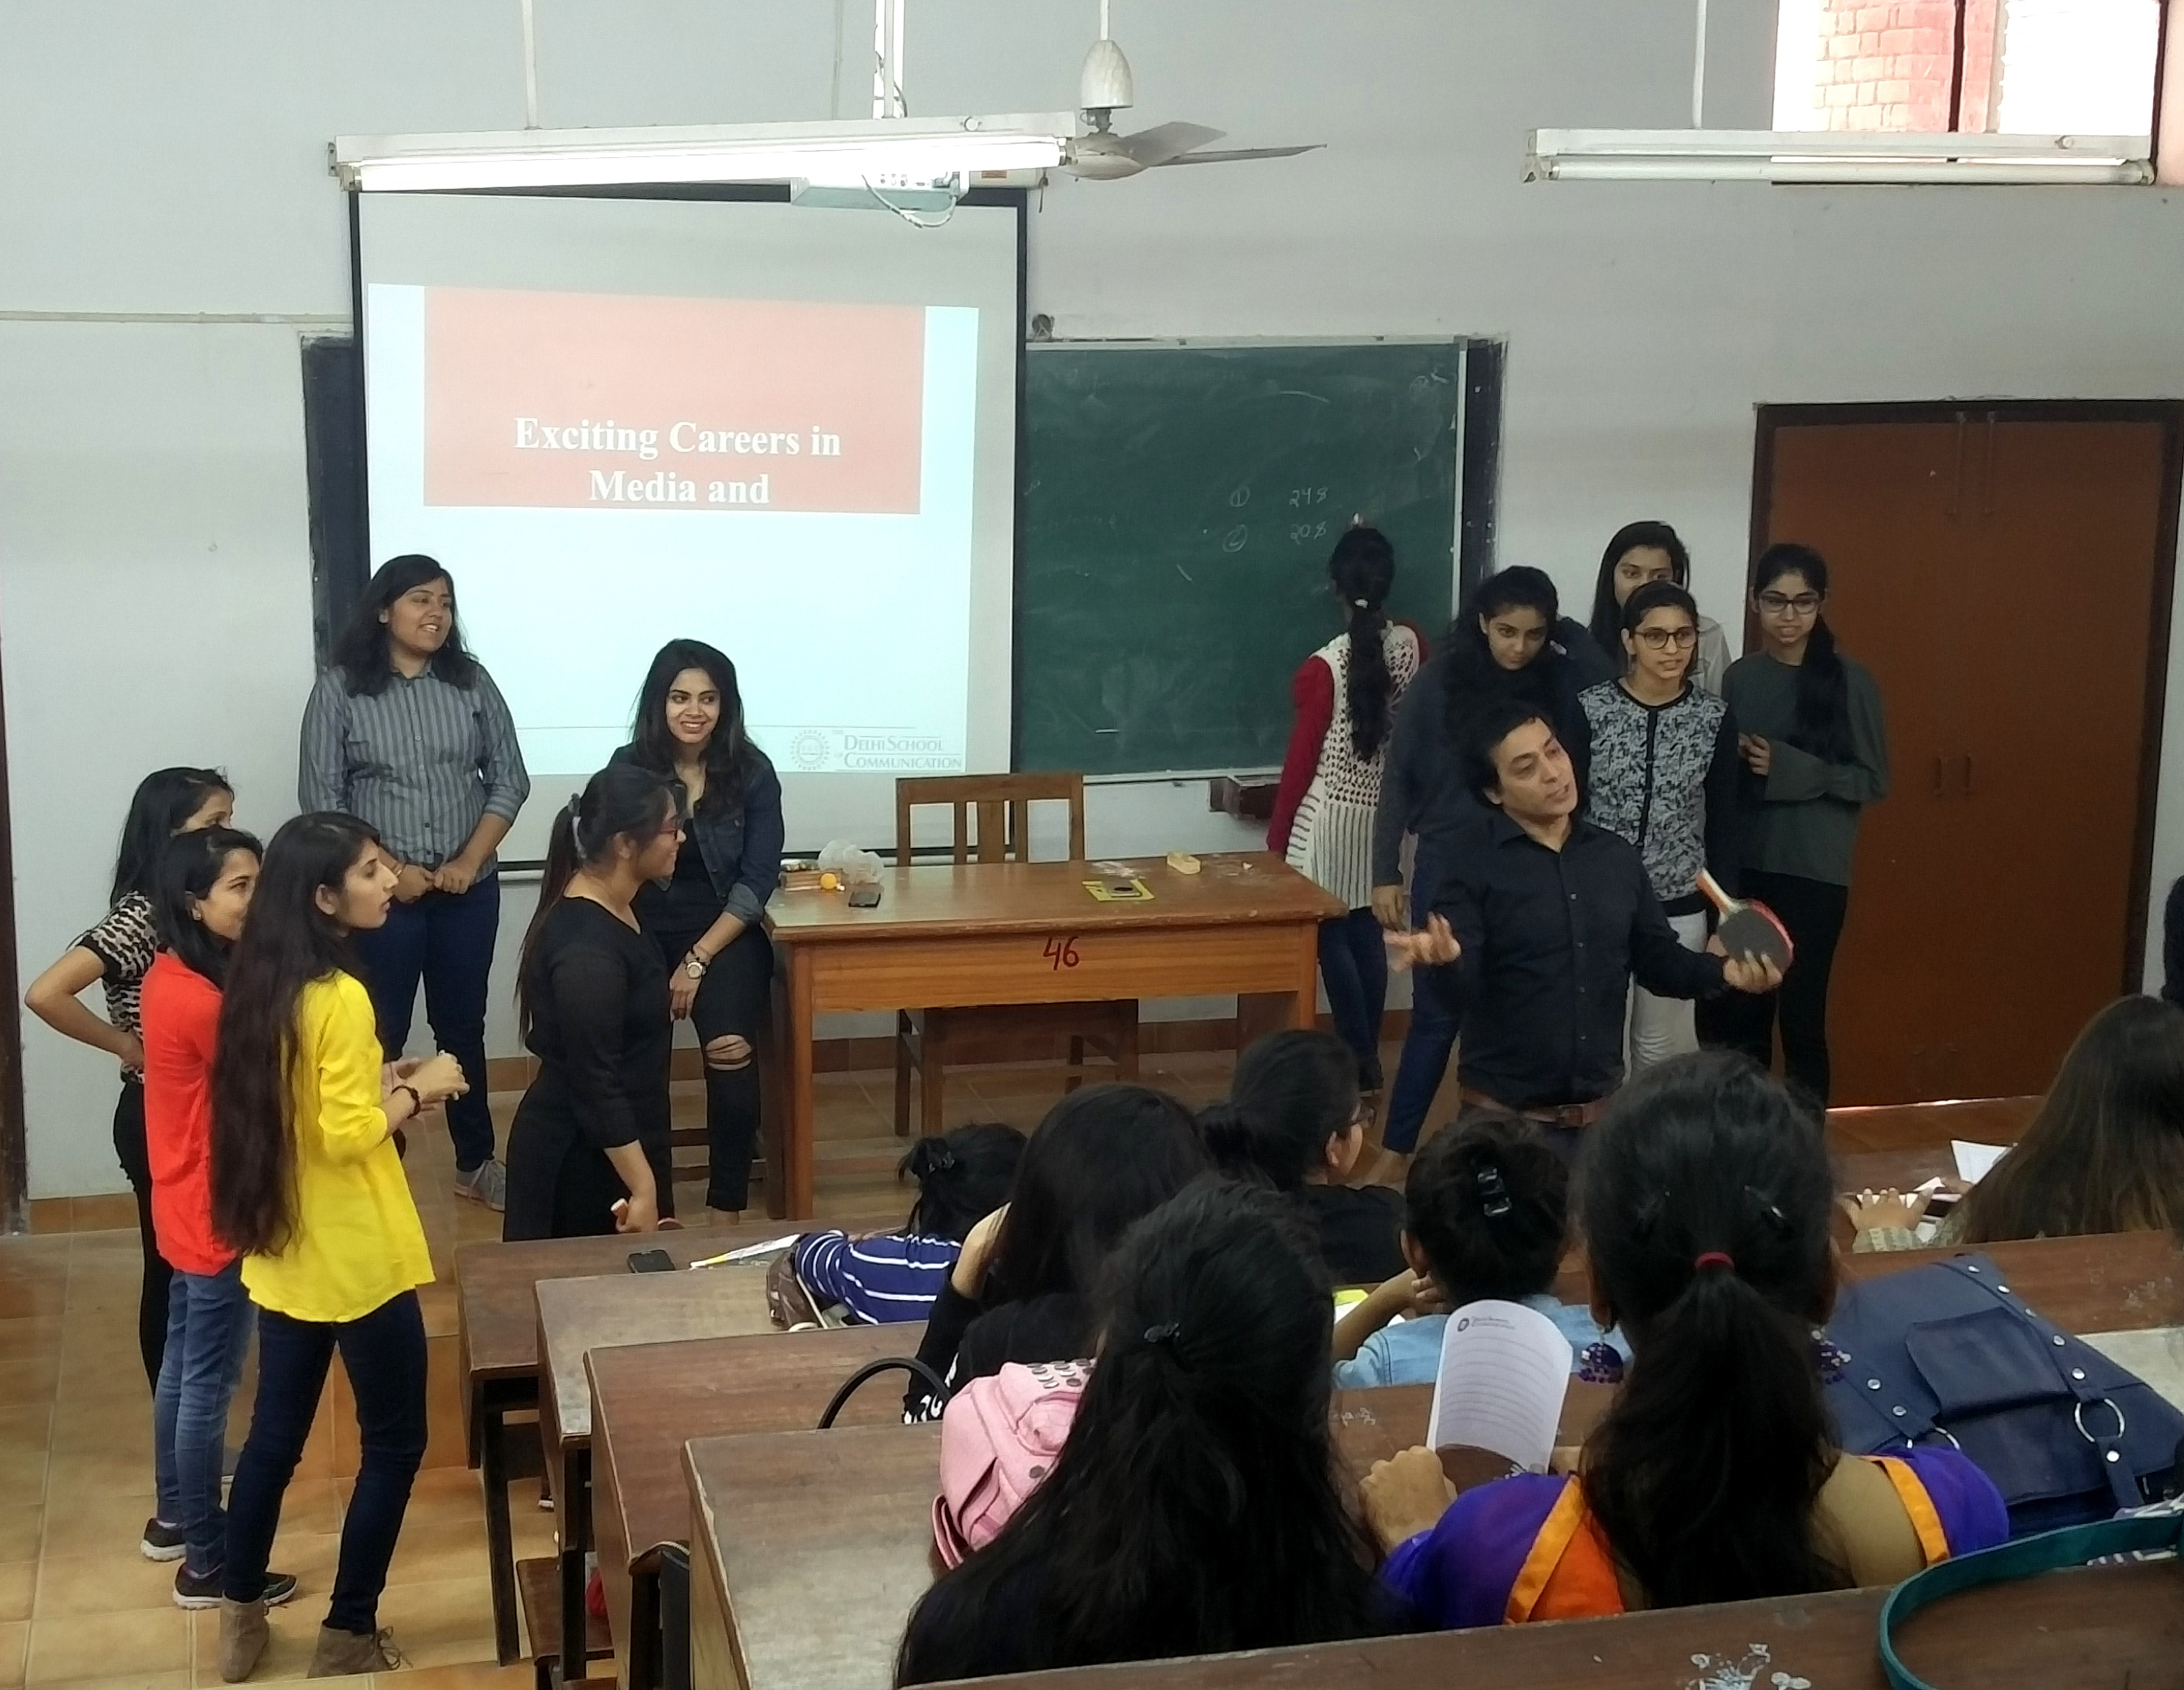 DSC Conducted Workshops on Exciting Careers in Media